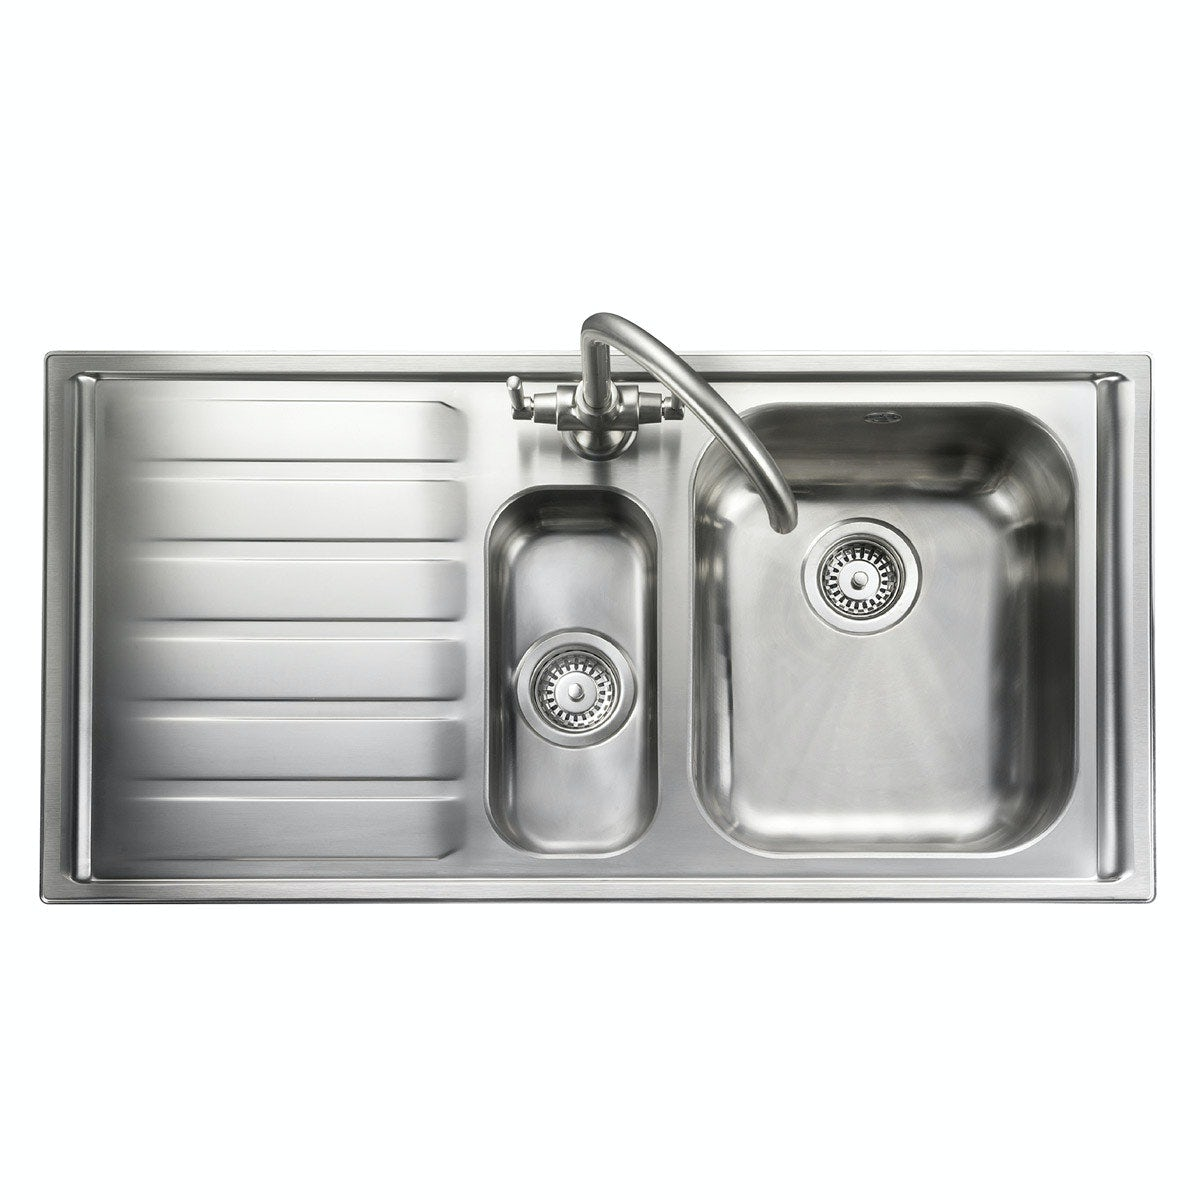 Rangemaster Manhattan 1.5 bowl left handed kitchen sink with waste kit